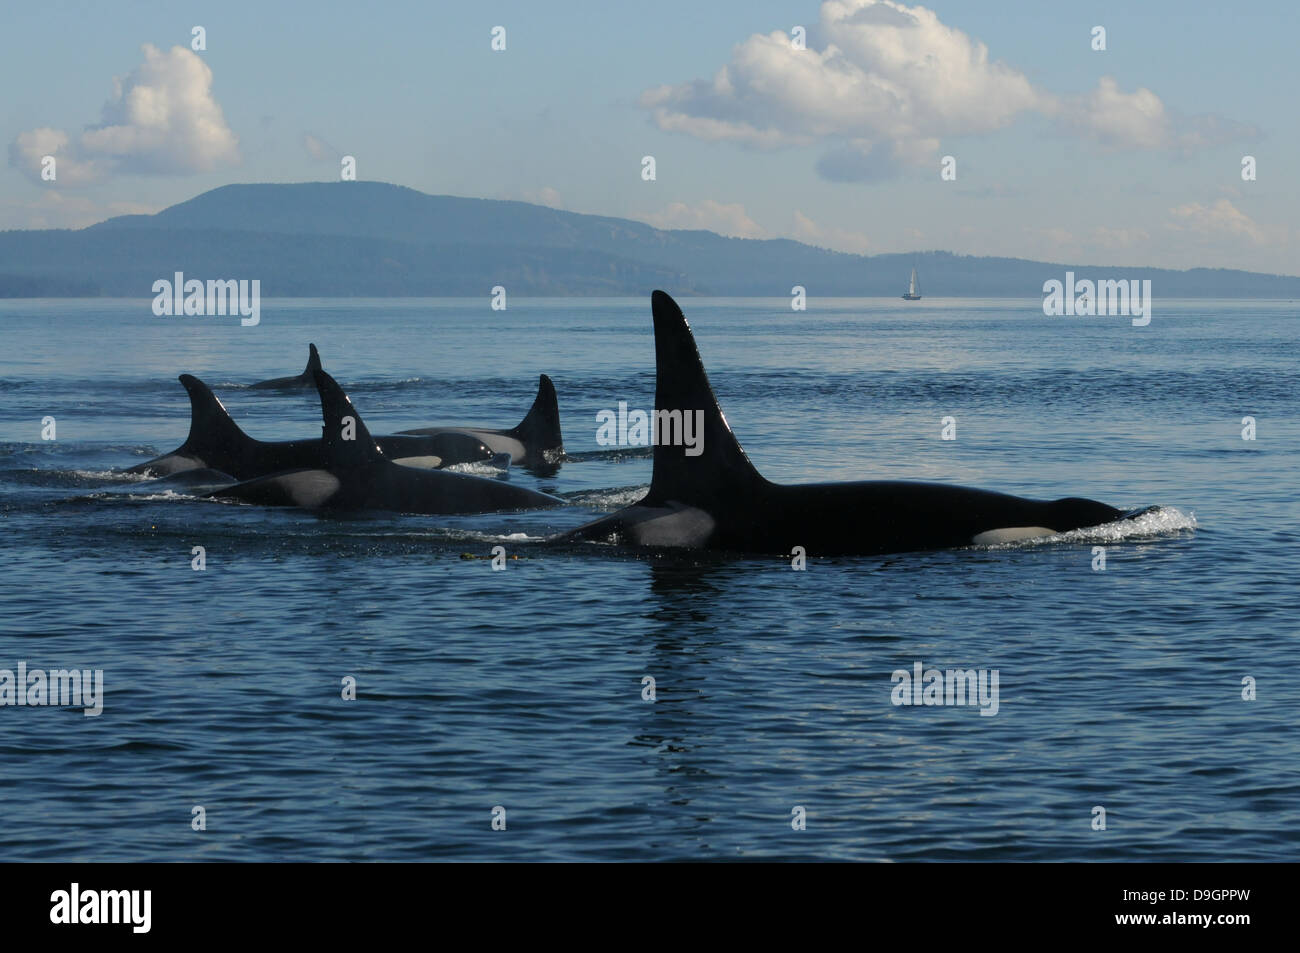 a family group of killer whales travels through Haro Strait (WA, USA) - Stock Image